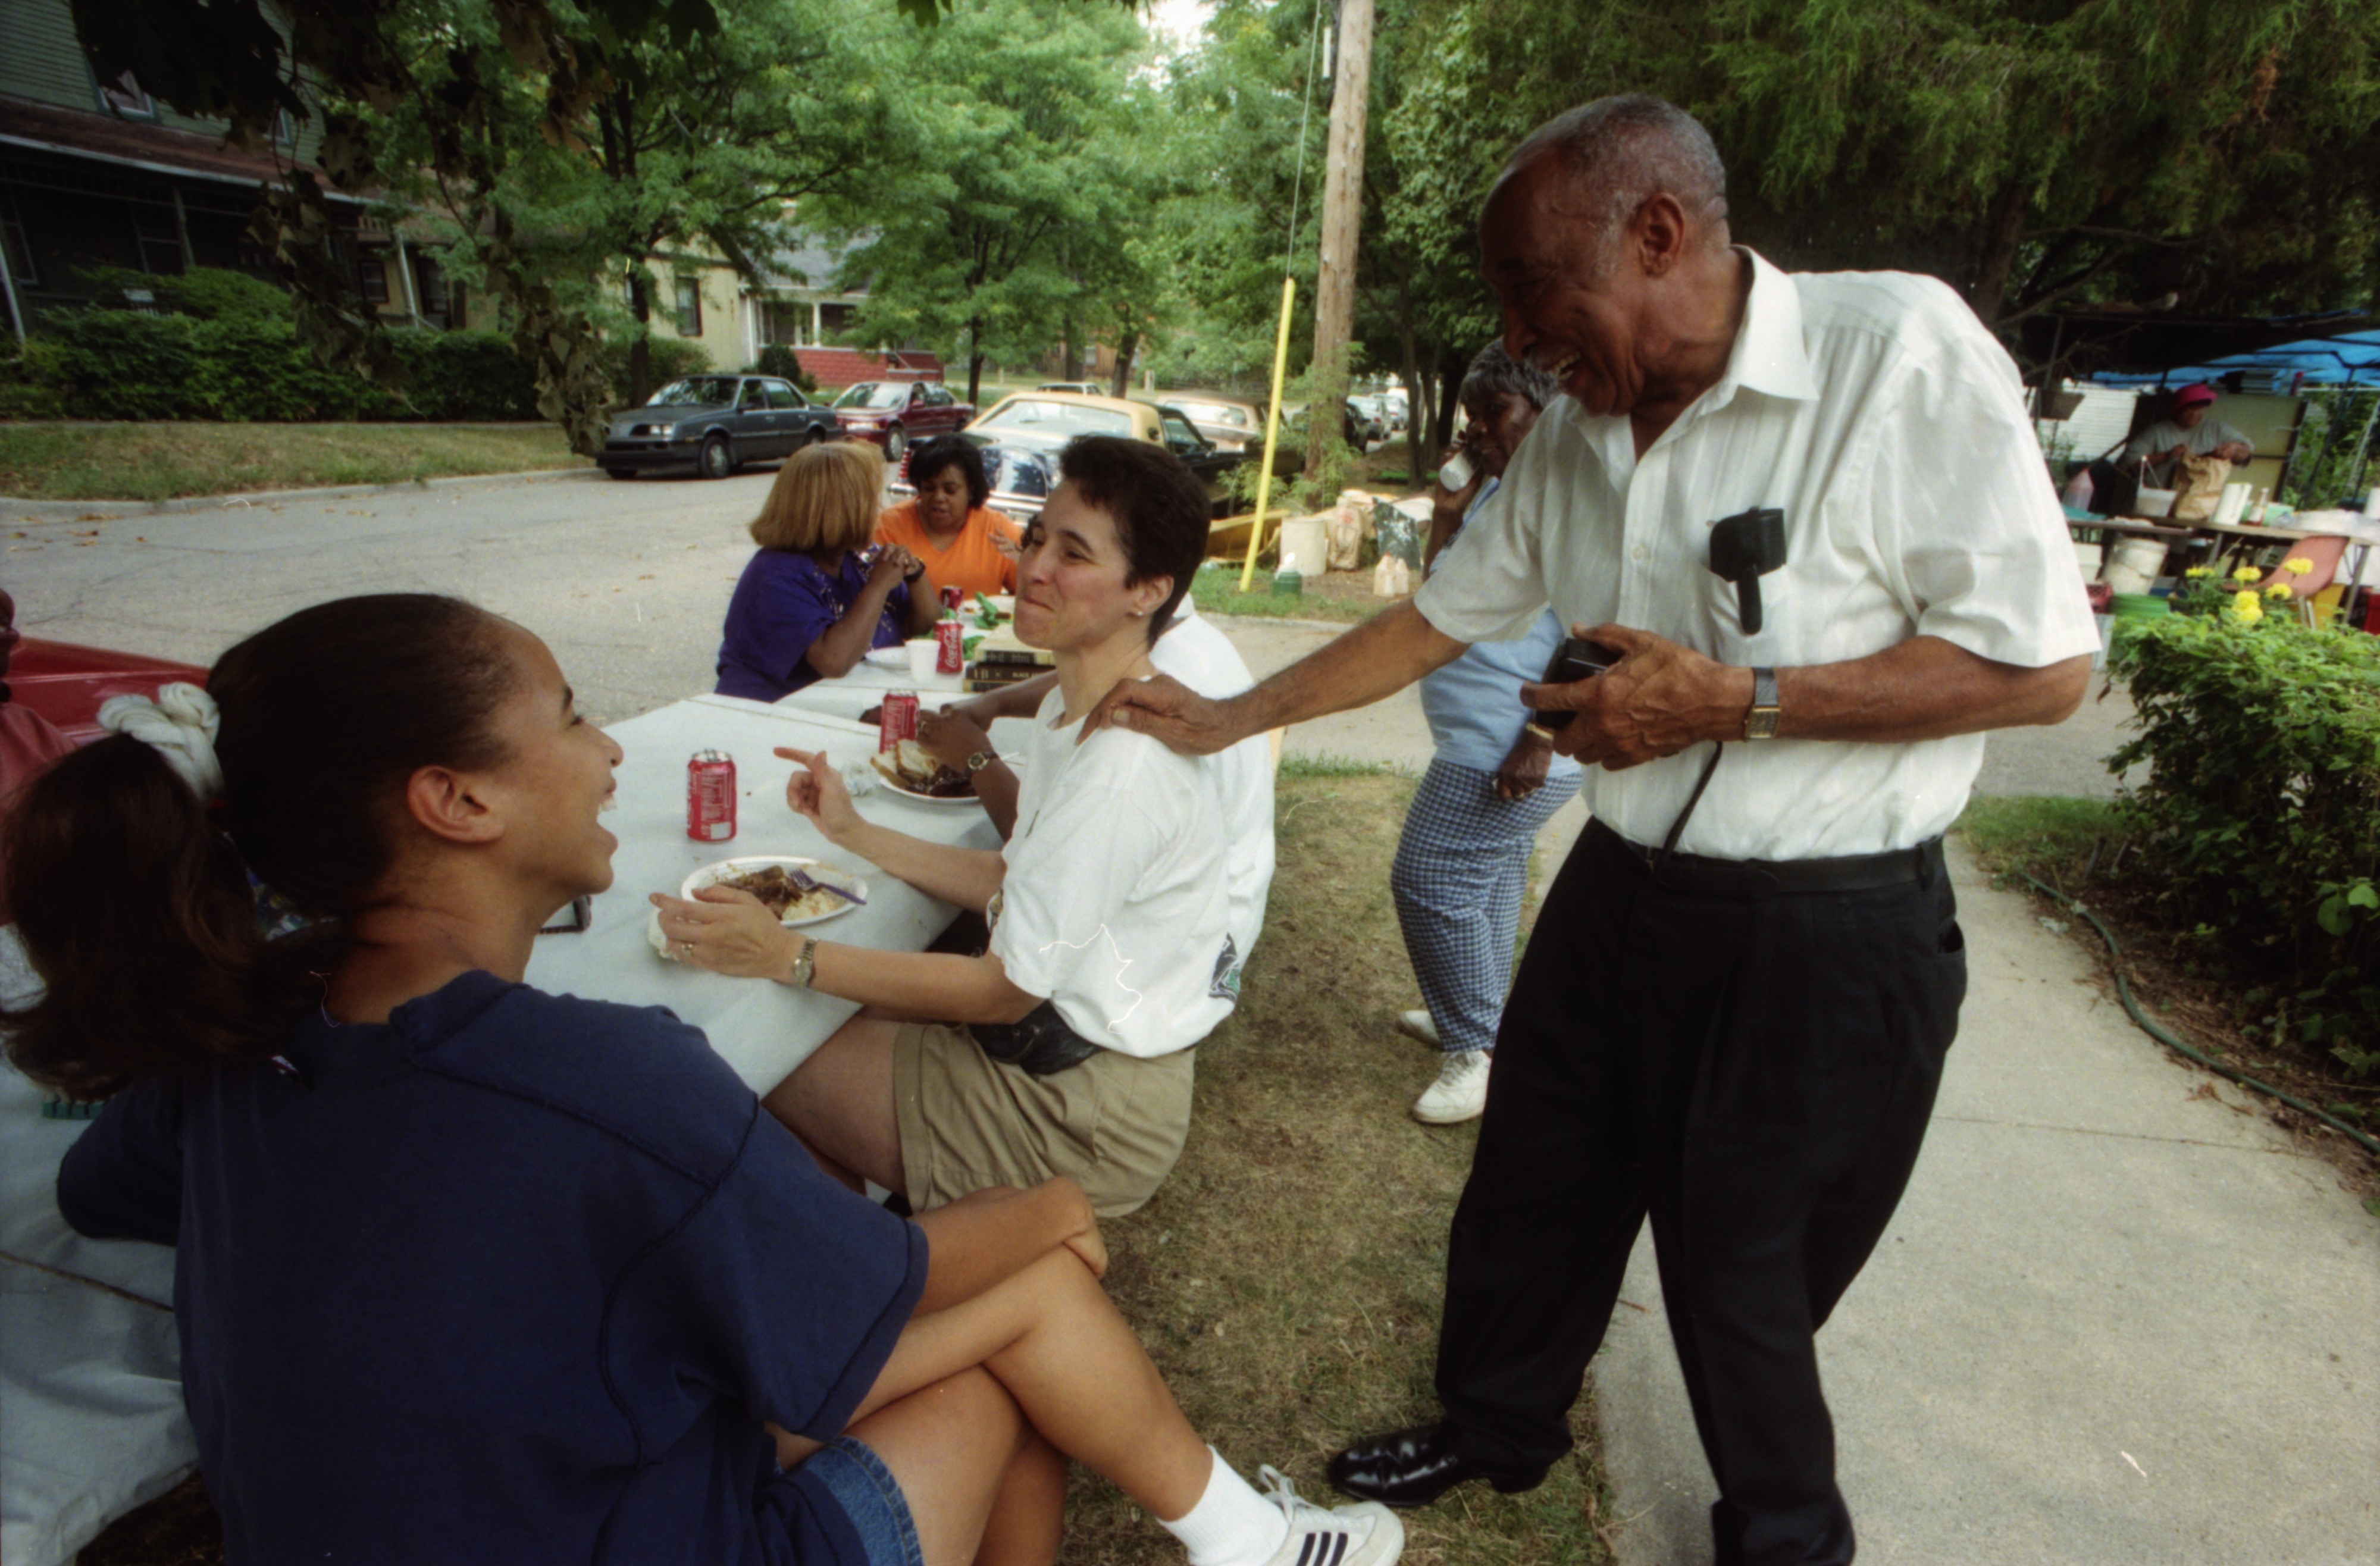 Guests Enjoy Labor Day Barbecue at the Seeley's, September 2, 1996 image